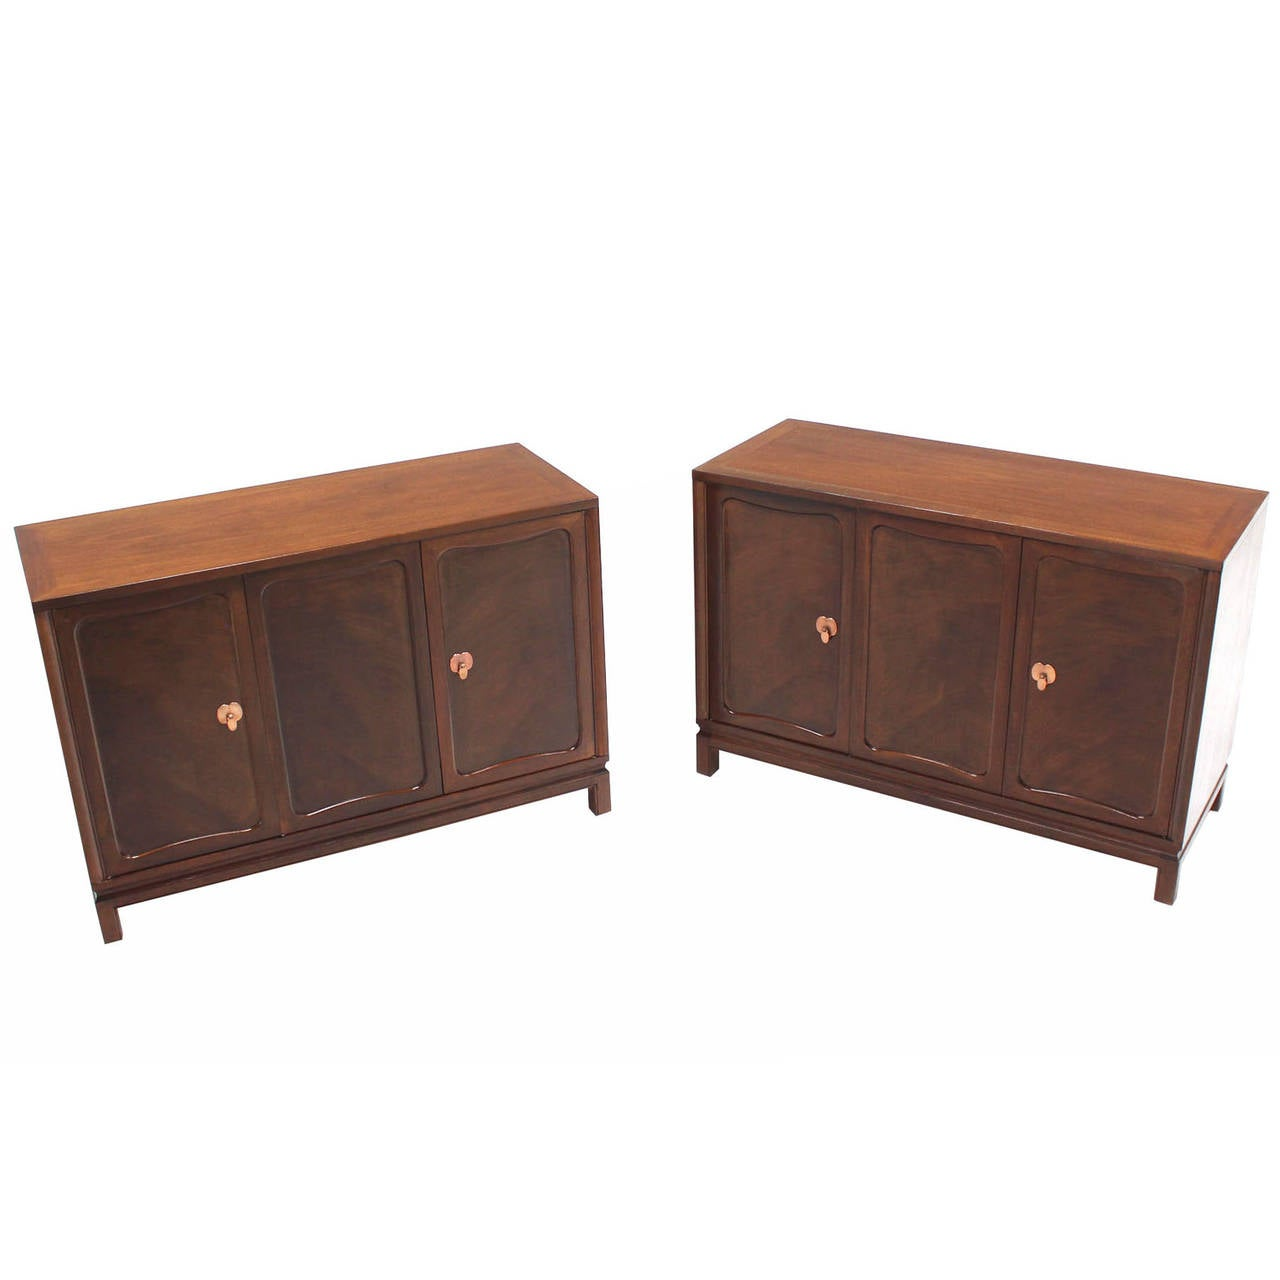 Pair of Walnut Three-Door Credenzas Bachelor Chests Drawers Copper Pulls